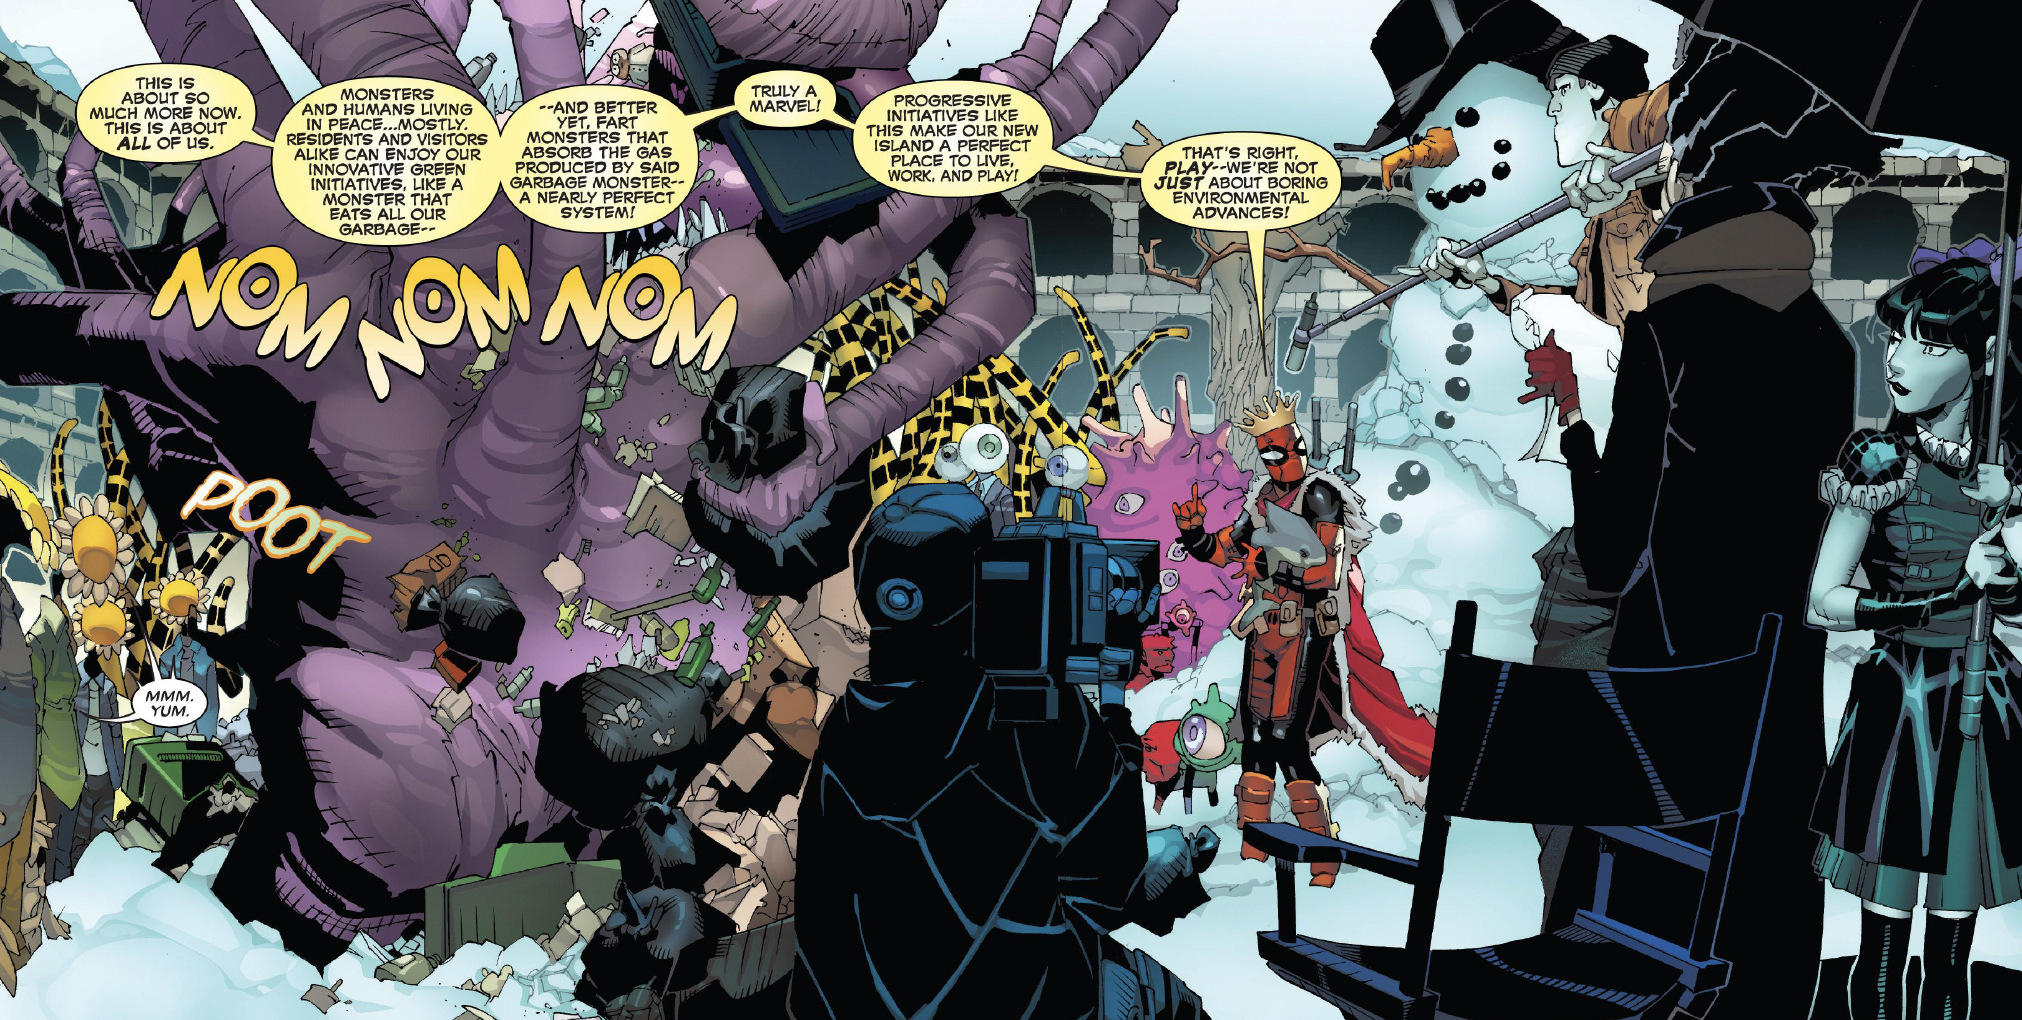 Page #4 of Deadpool #2.